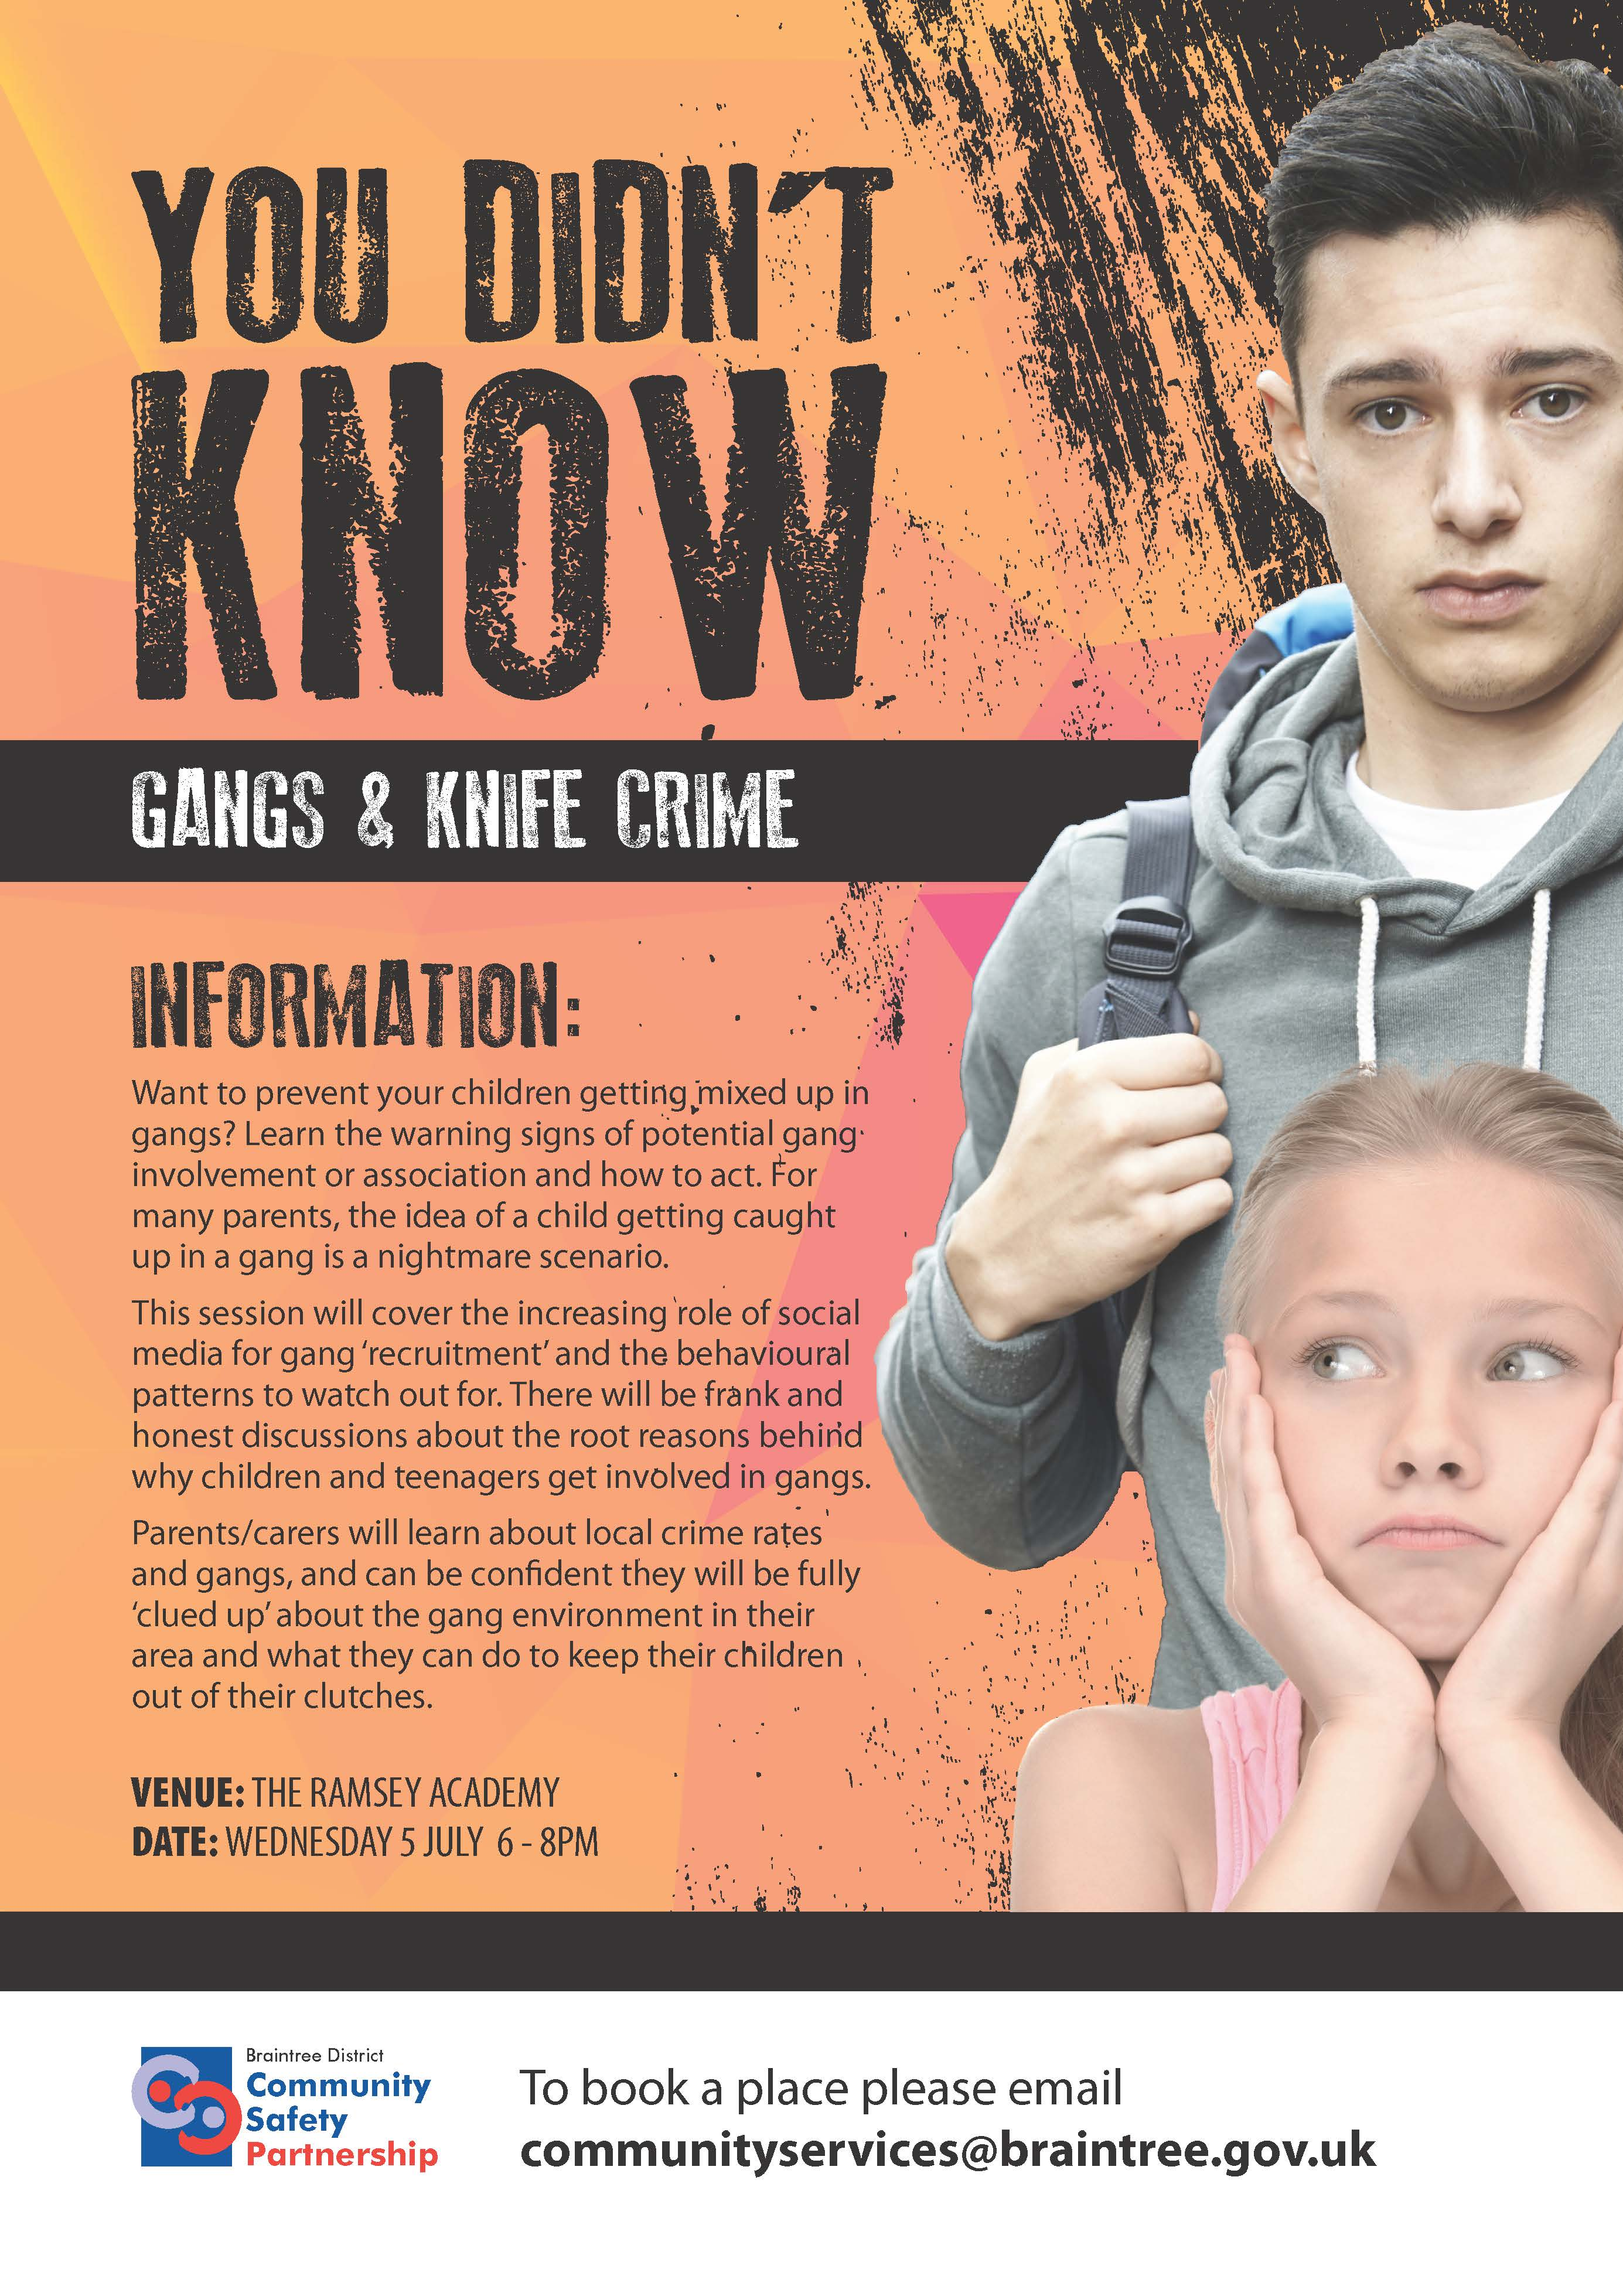 Gangs and Knife Crime Parents Workshop Wednesday 5 July 6pm - 8pm